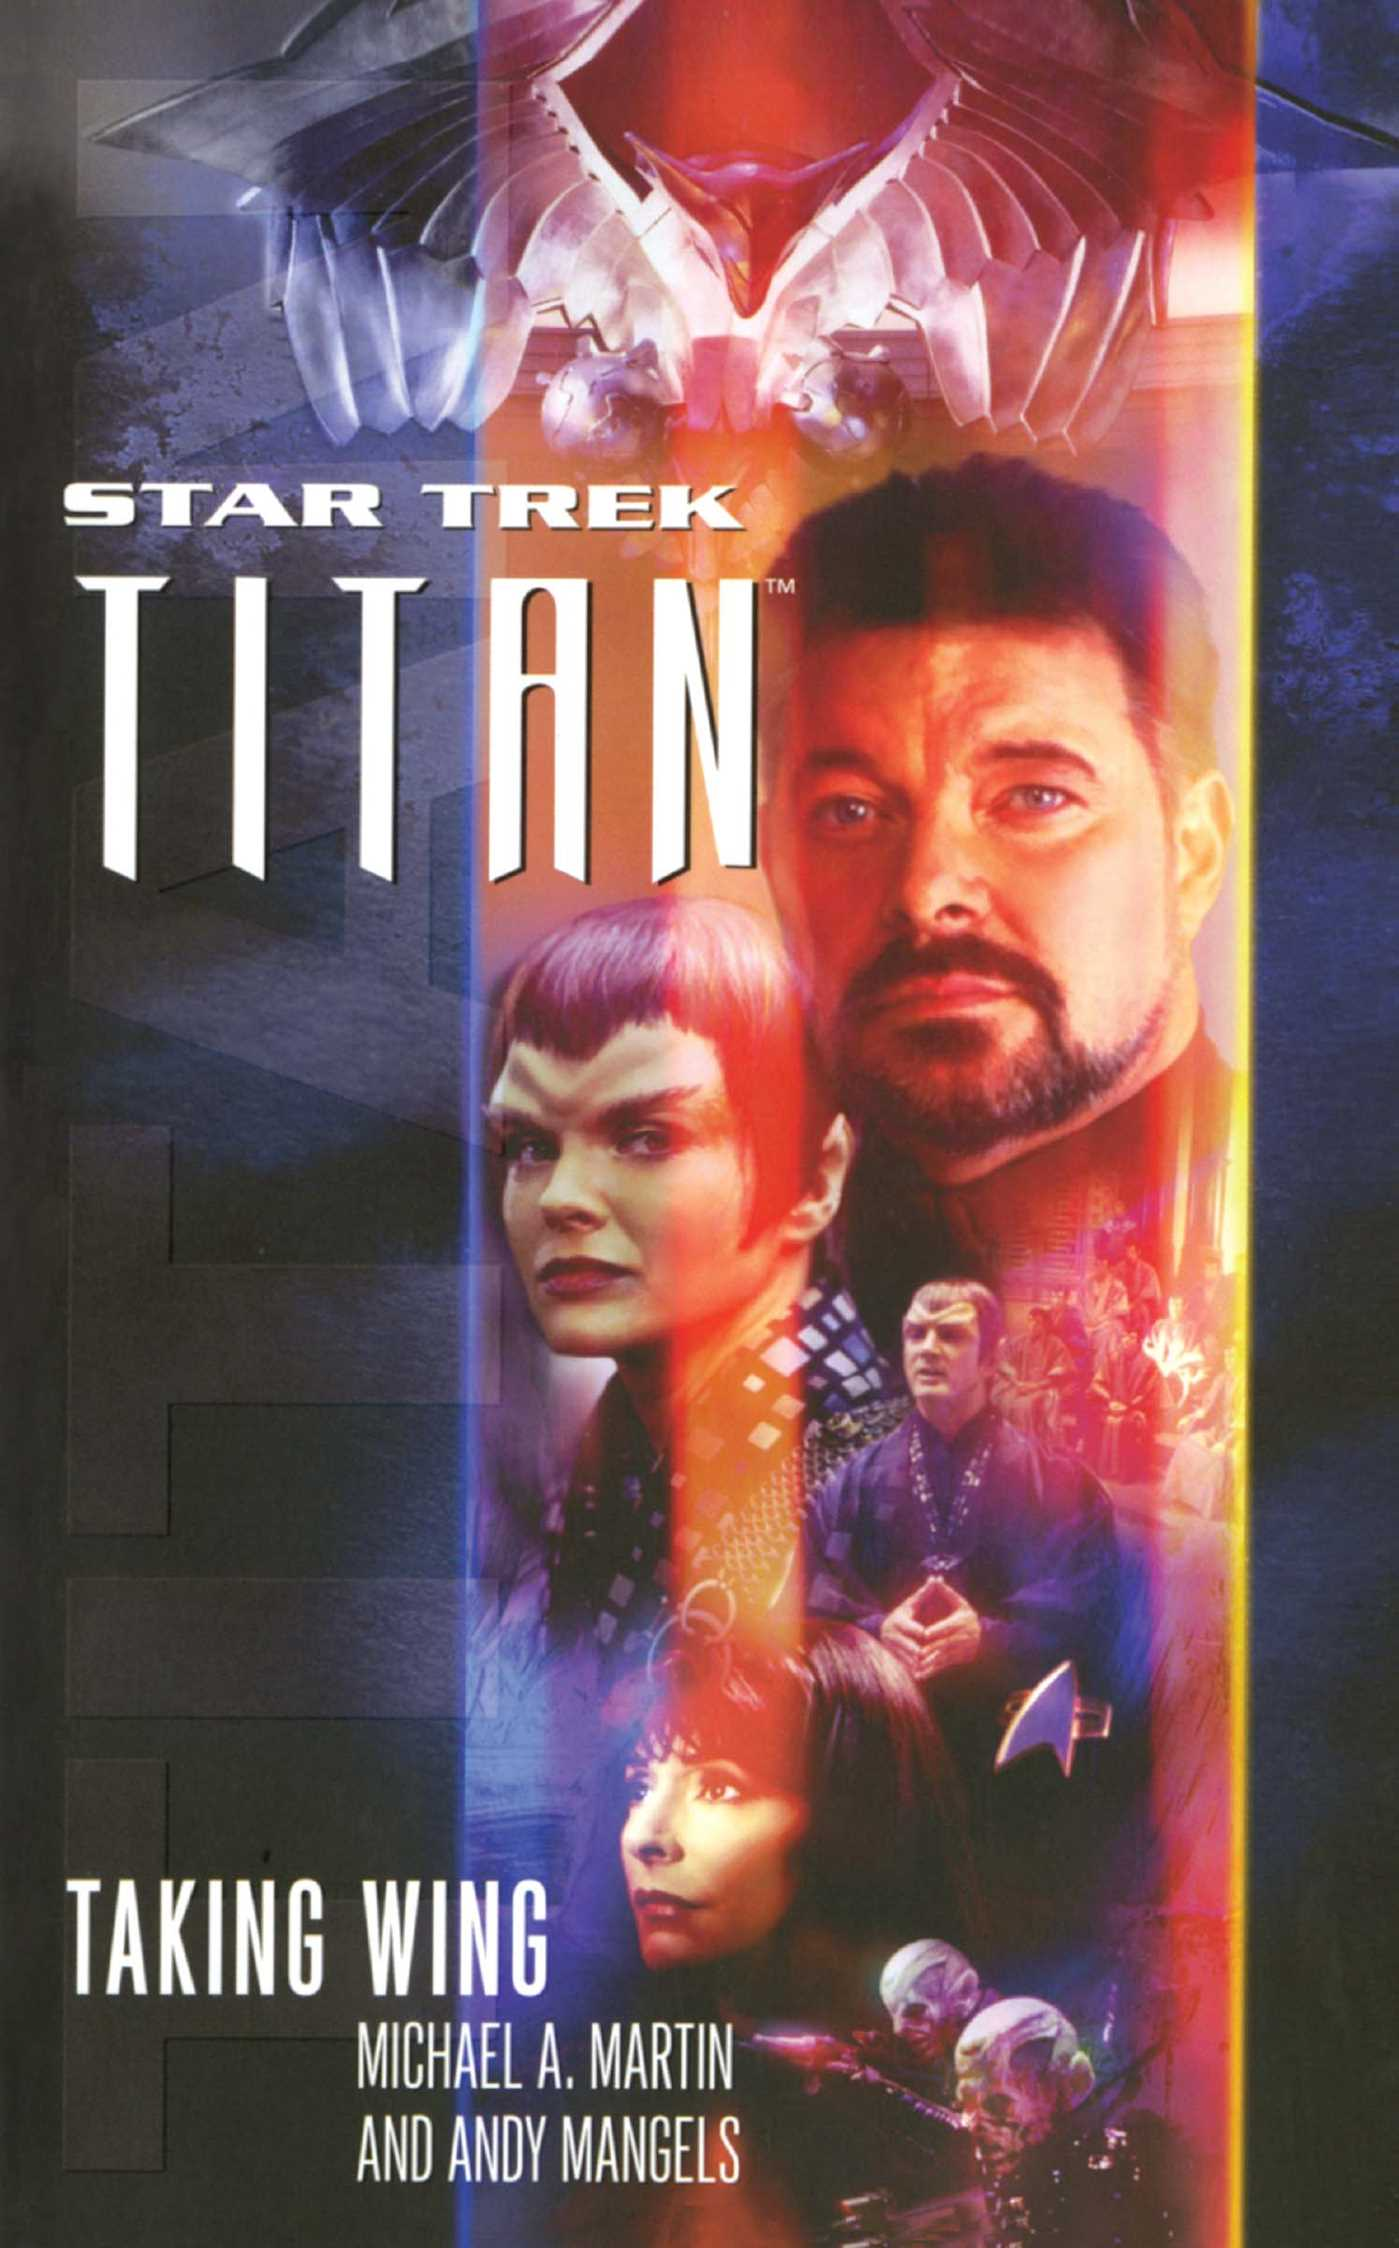 Star-trek-titan-1-taking-wing-9781416506775_hr